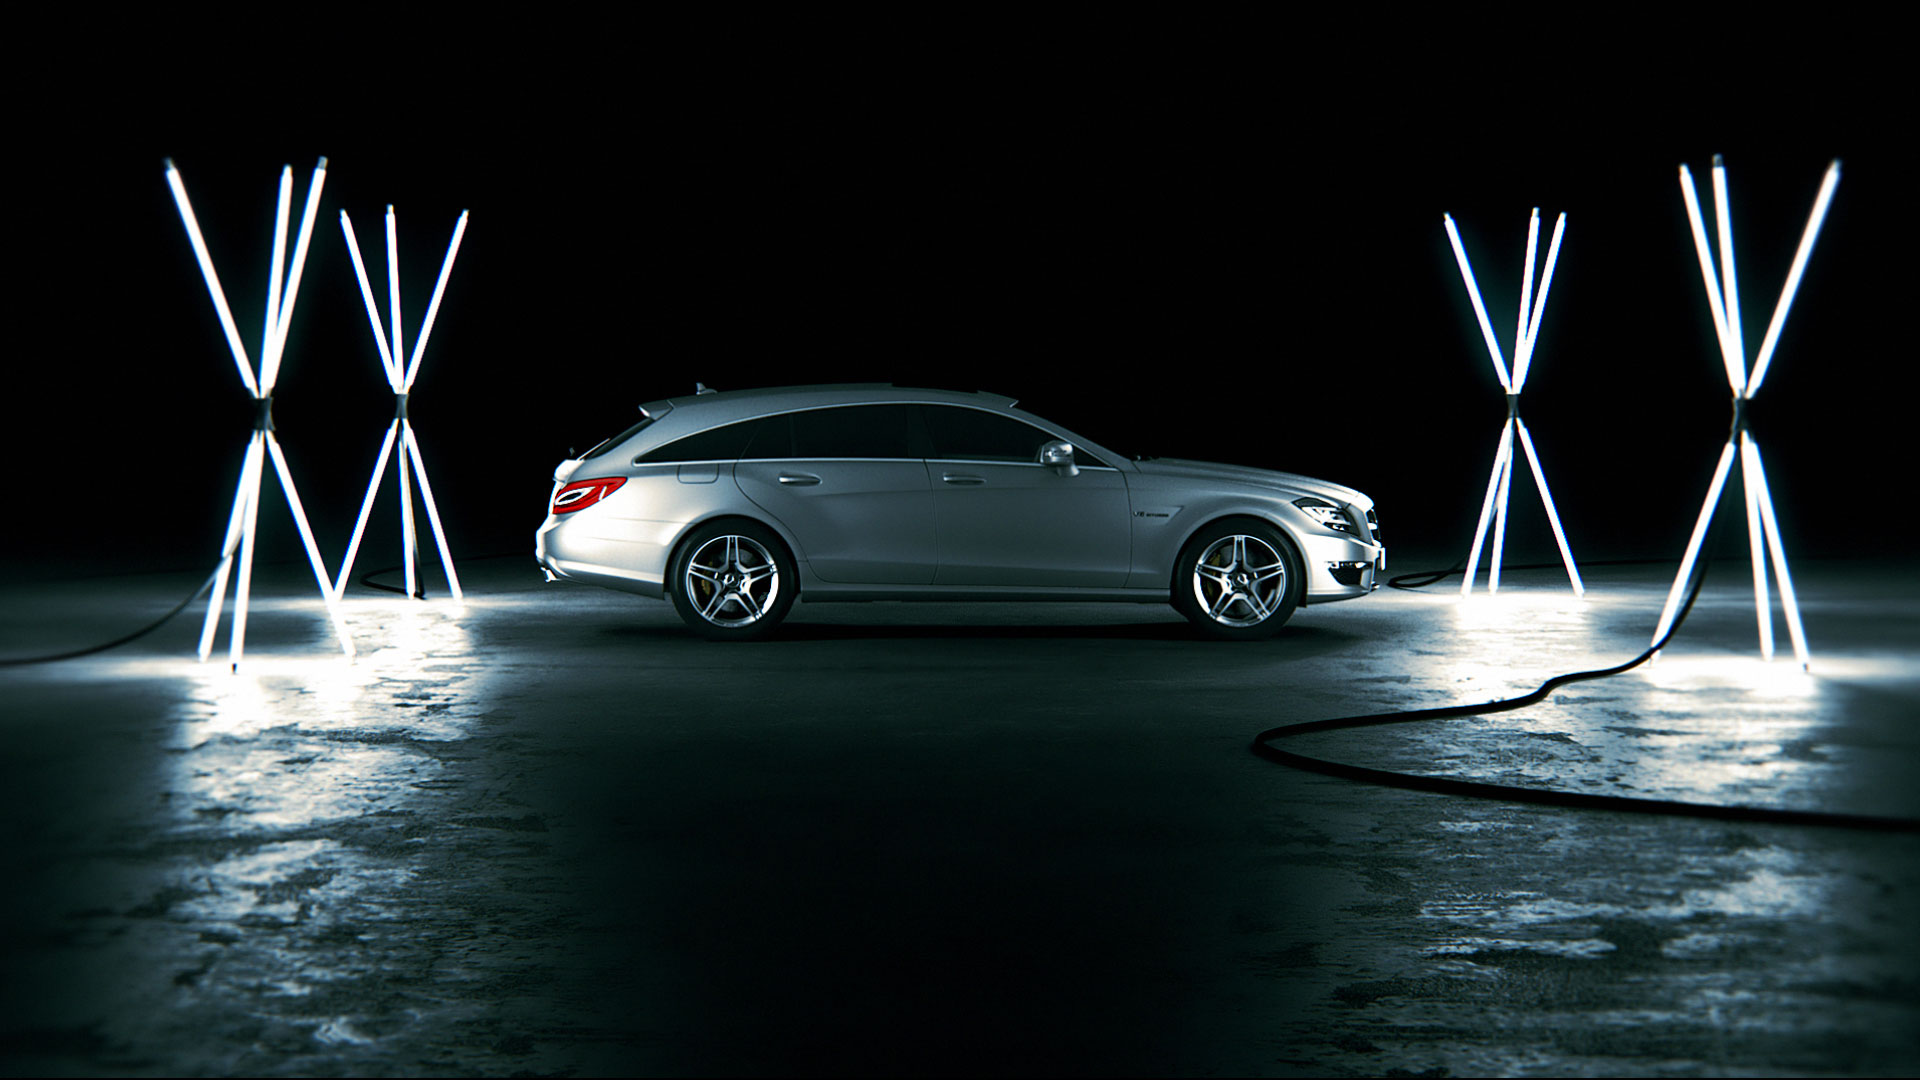 Sideview Mercedes-Benz CLS promotion movie.